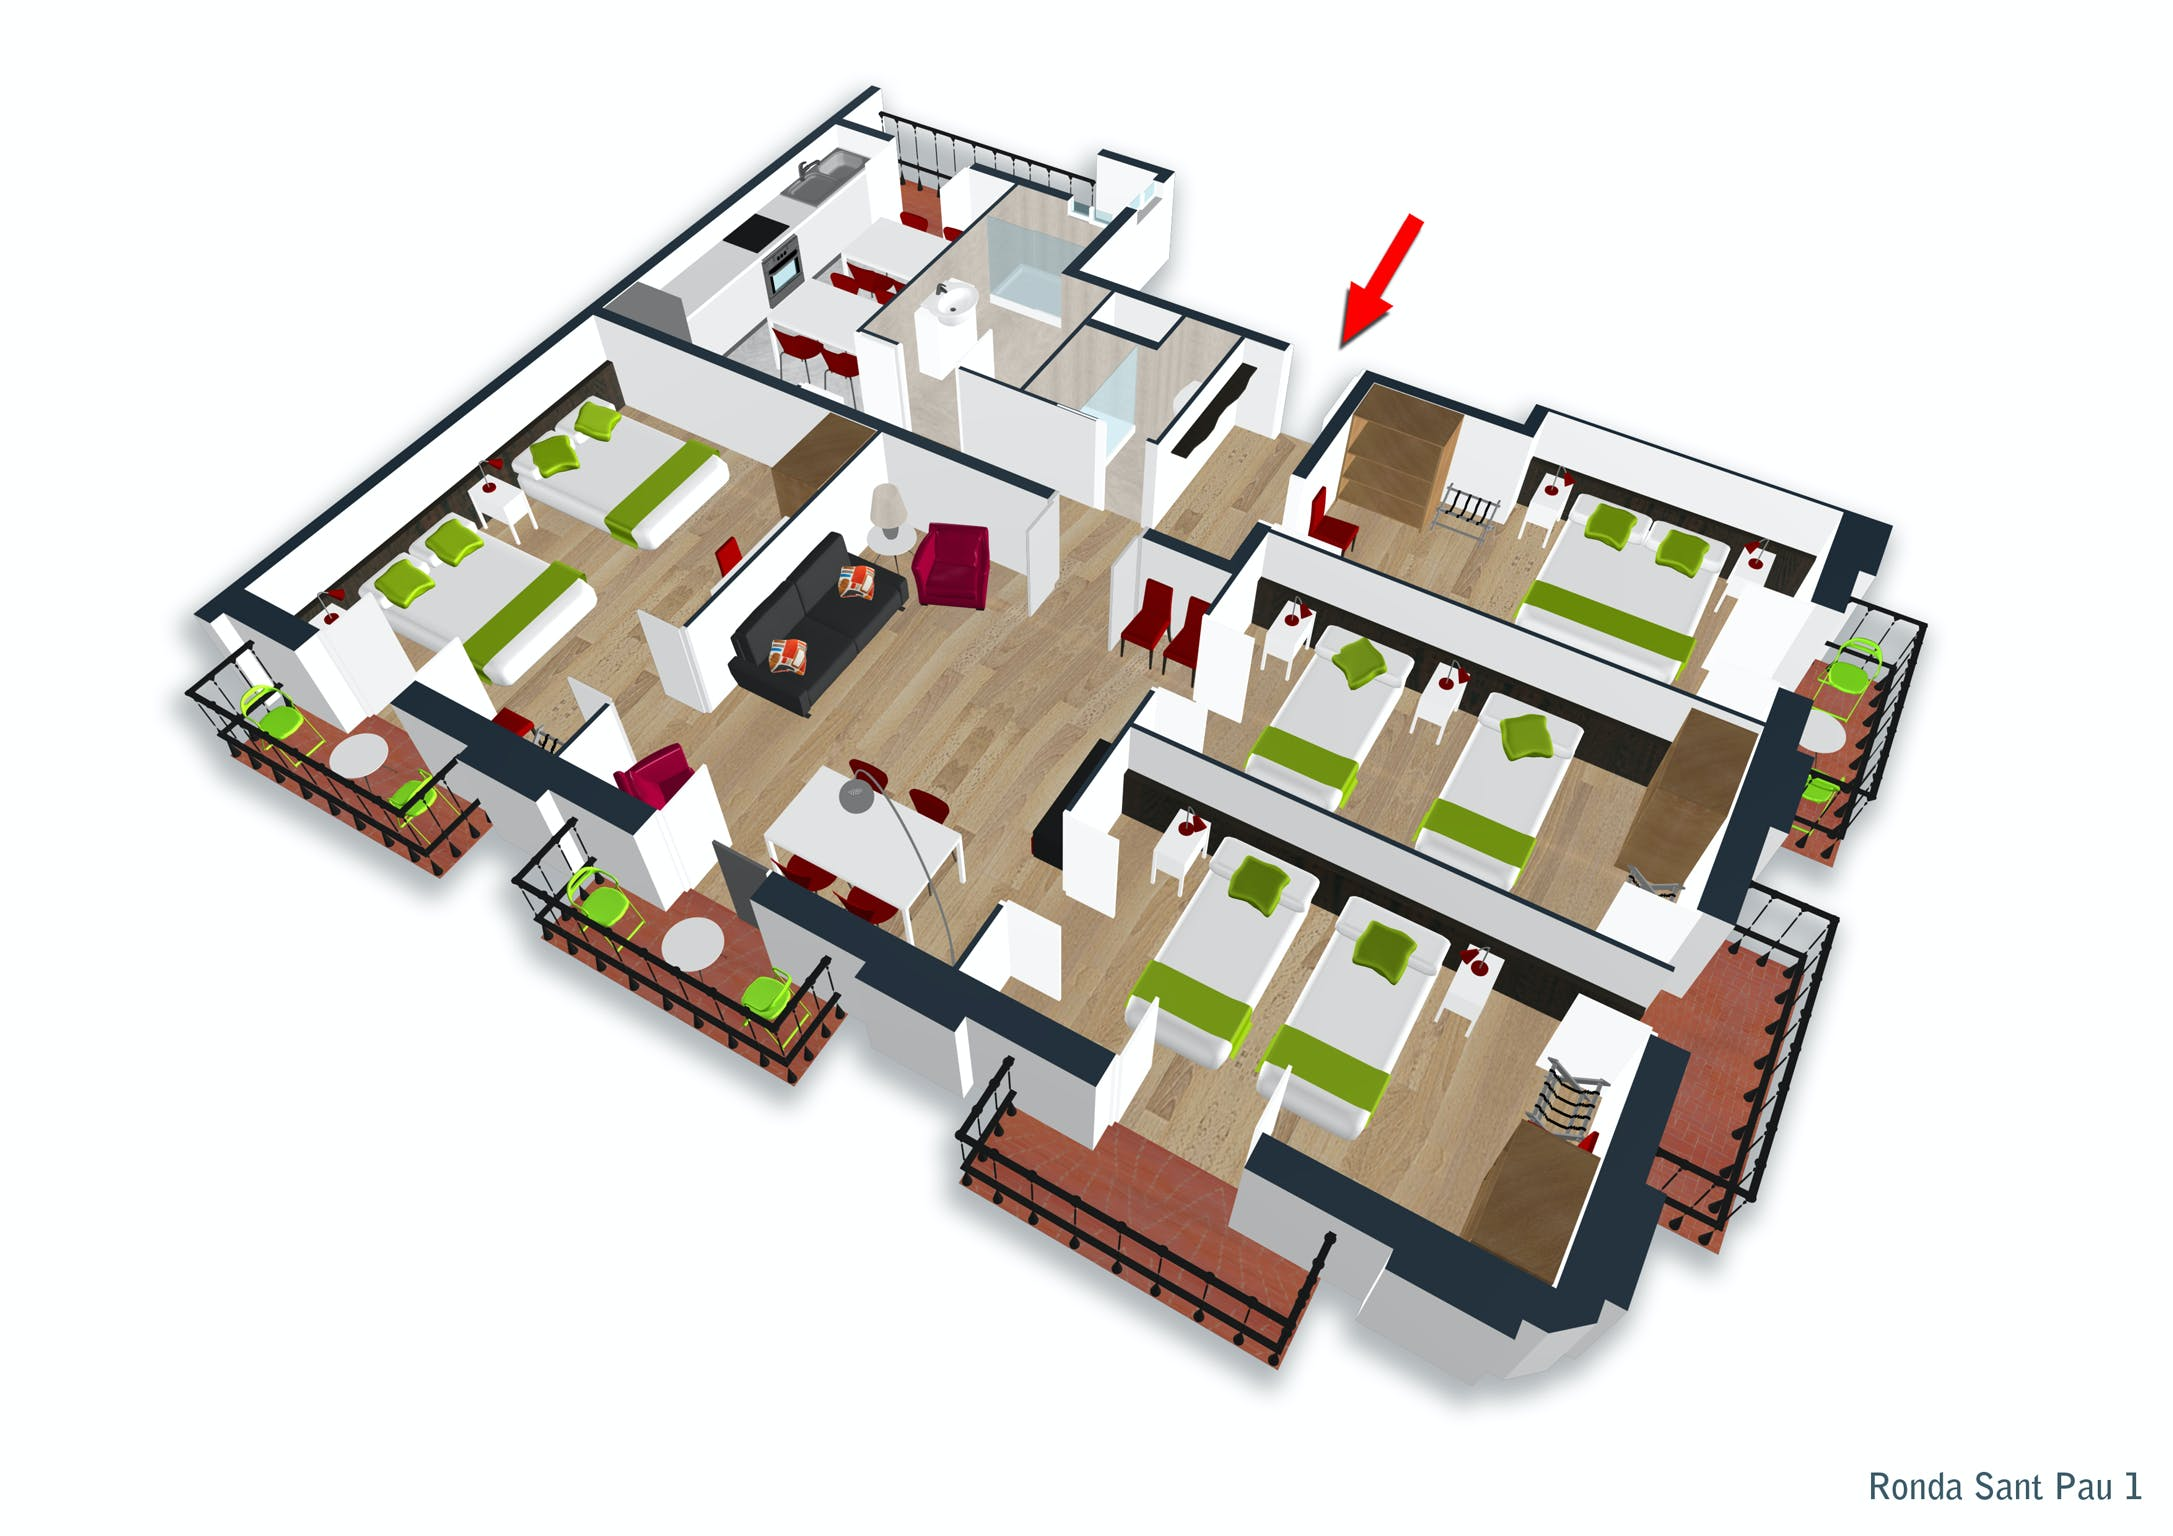 Four-Bedroom apartment with balconies floor plan